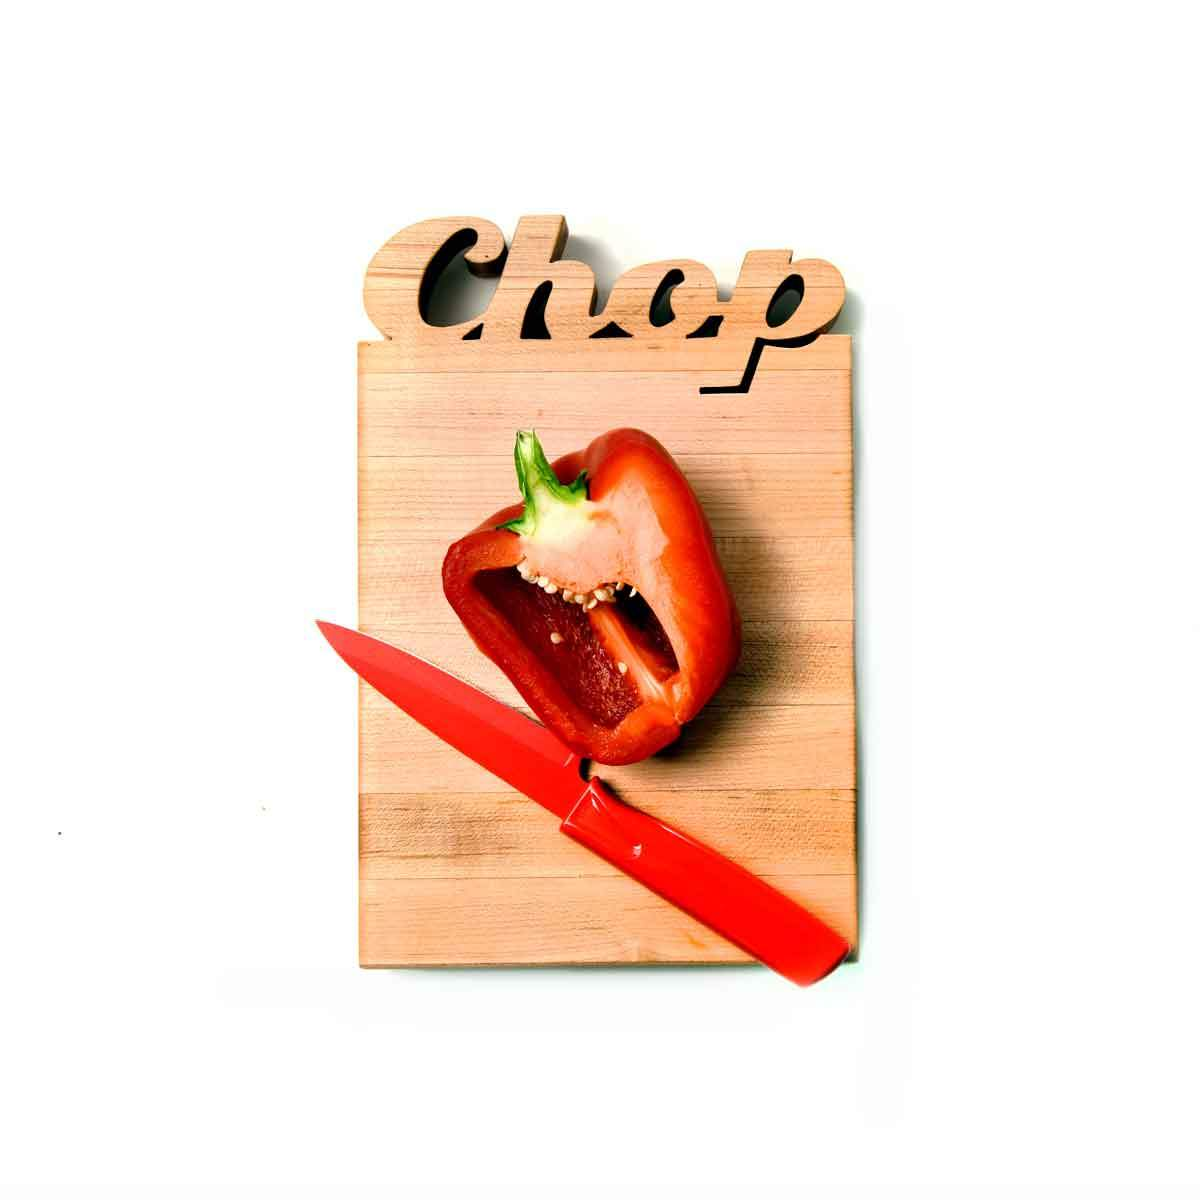 mini cutting boards - Chop cut out of wood - with bottle opener option